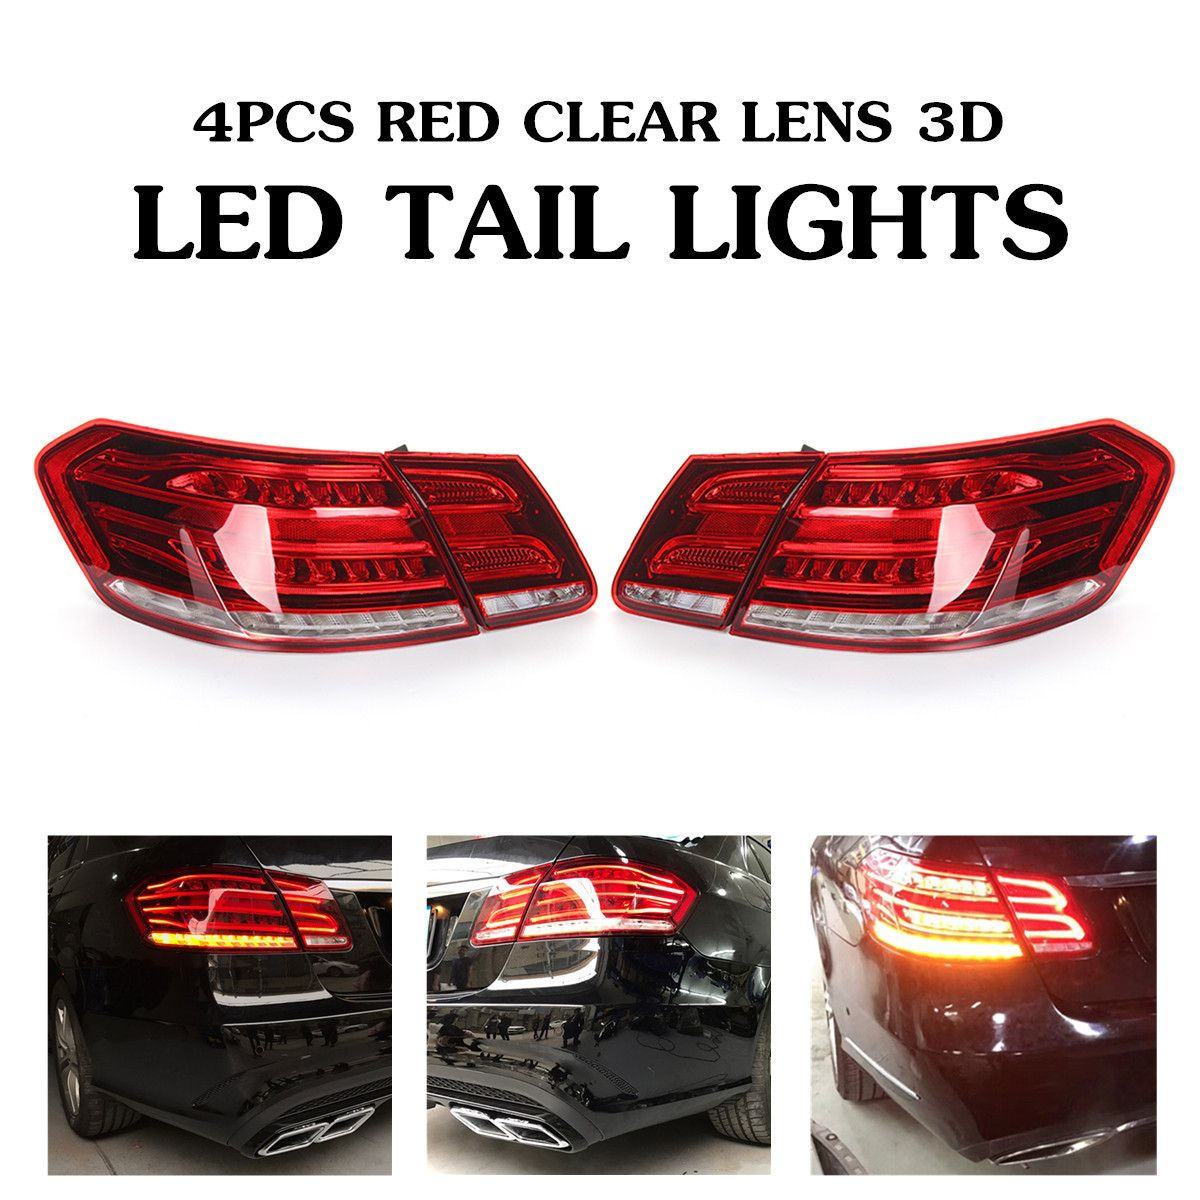 LED Tail Lights For Mercedes Benz E Class W212 E350 E300 E250 E63 Sedan Lamps ABS Direct replacement Car Light Assembly 49x19cm